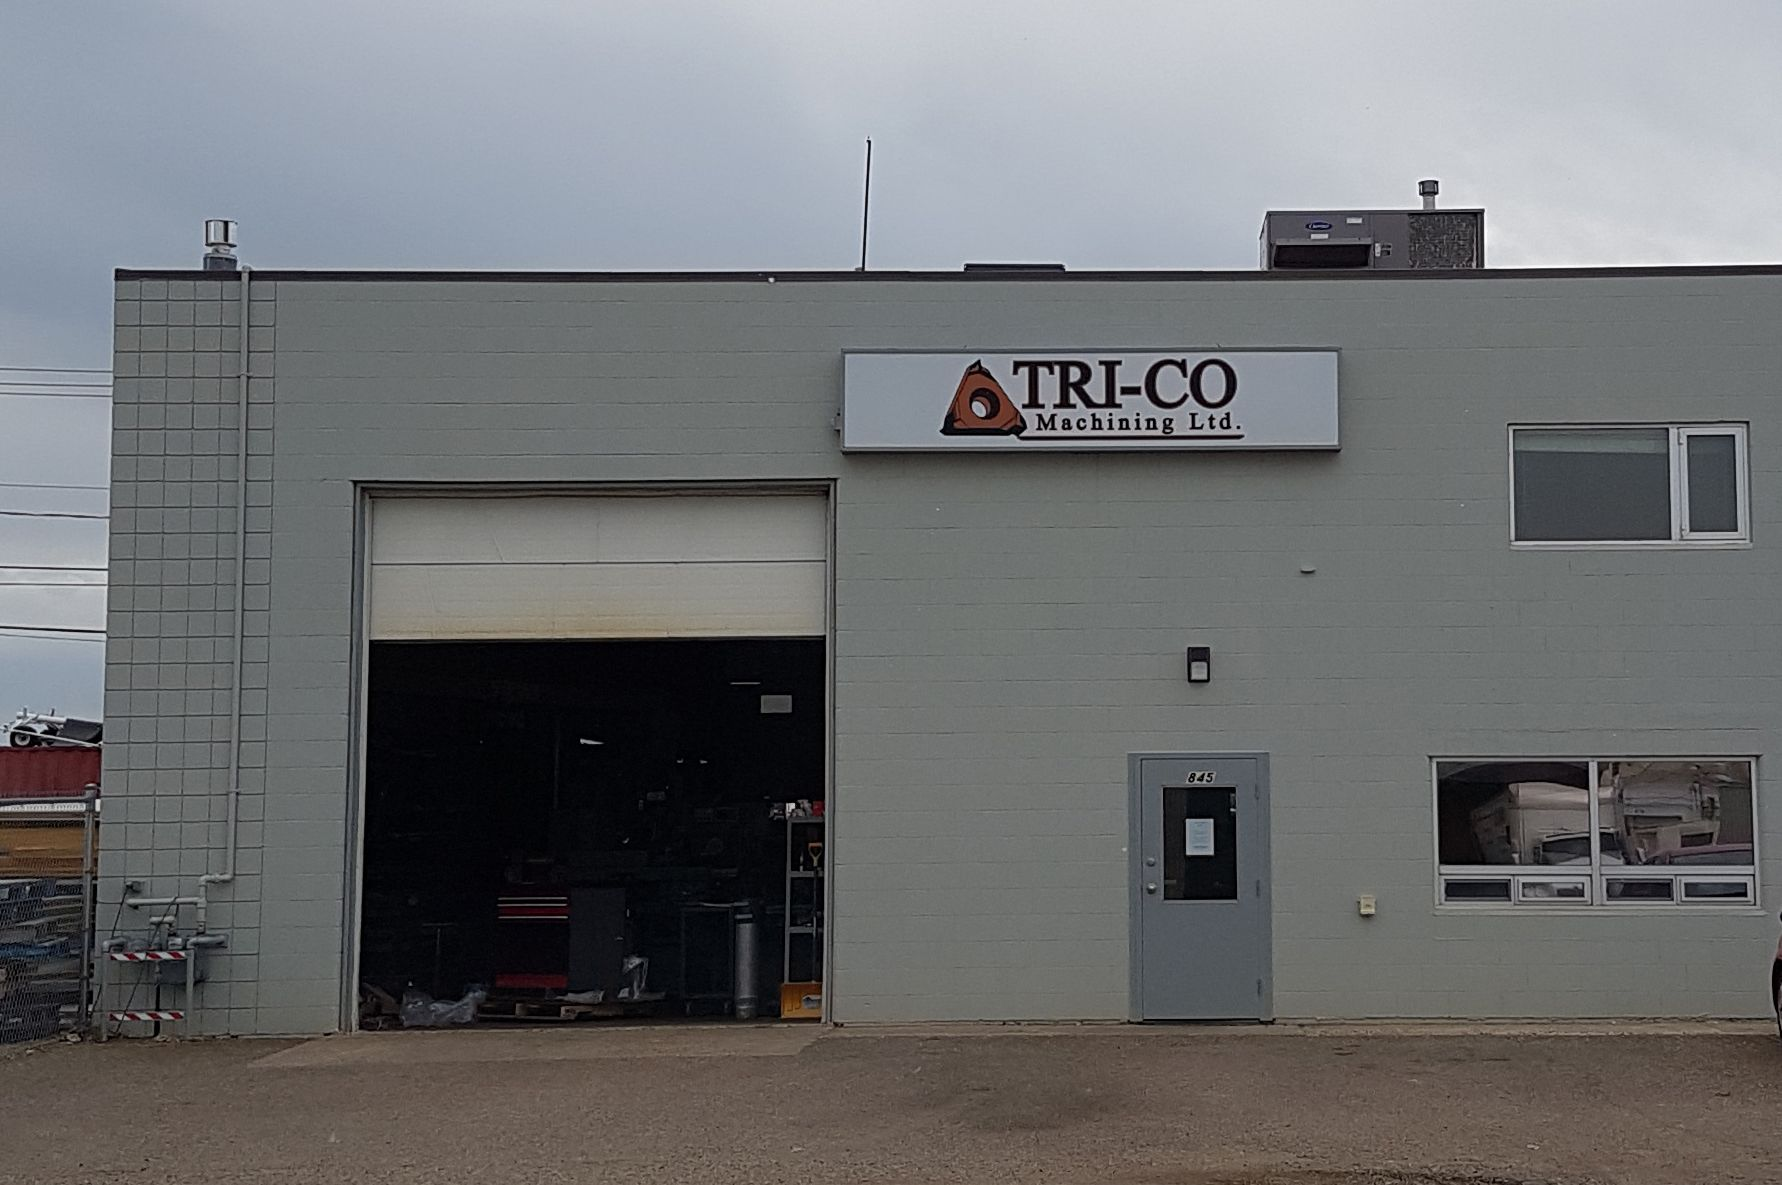 Tri-co illuminated sign